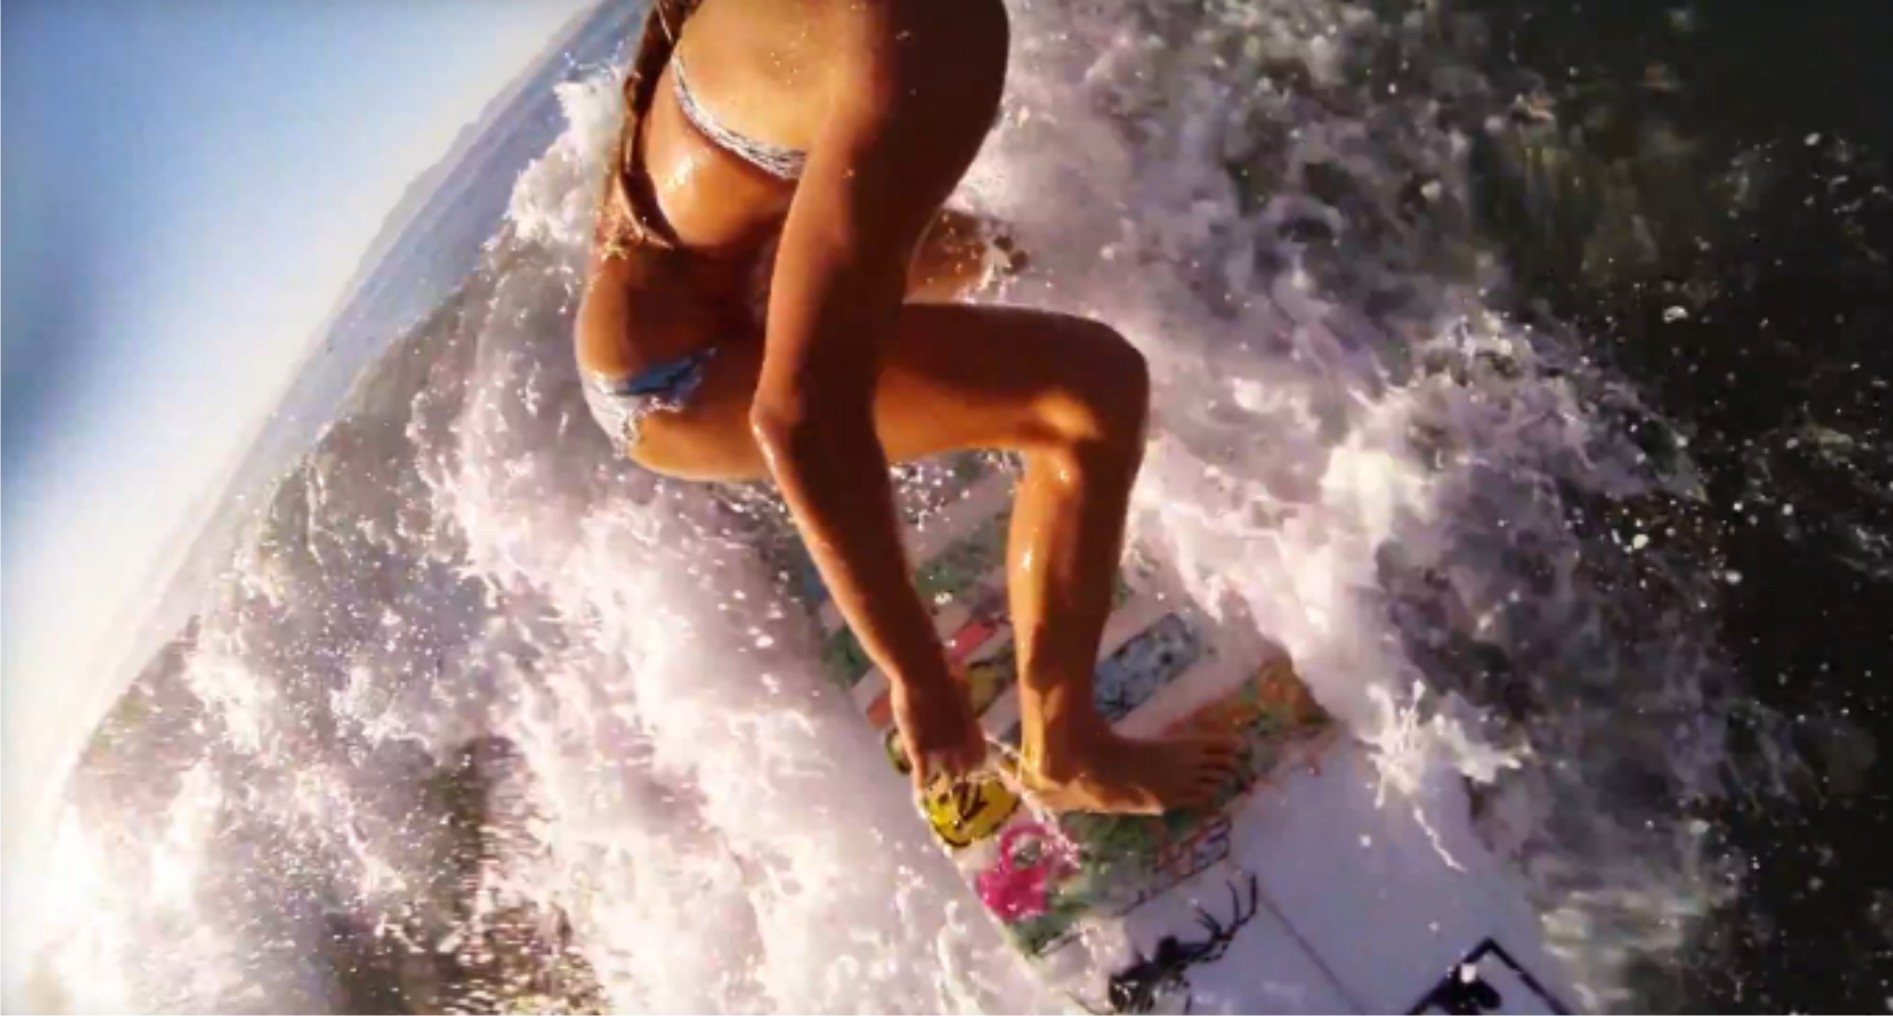 Tanika Hoffman surfing her local break and getting insane GoPro footage